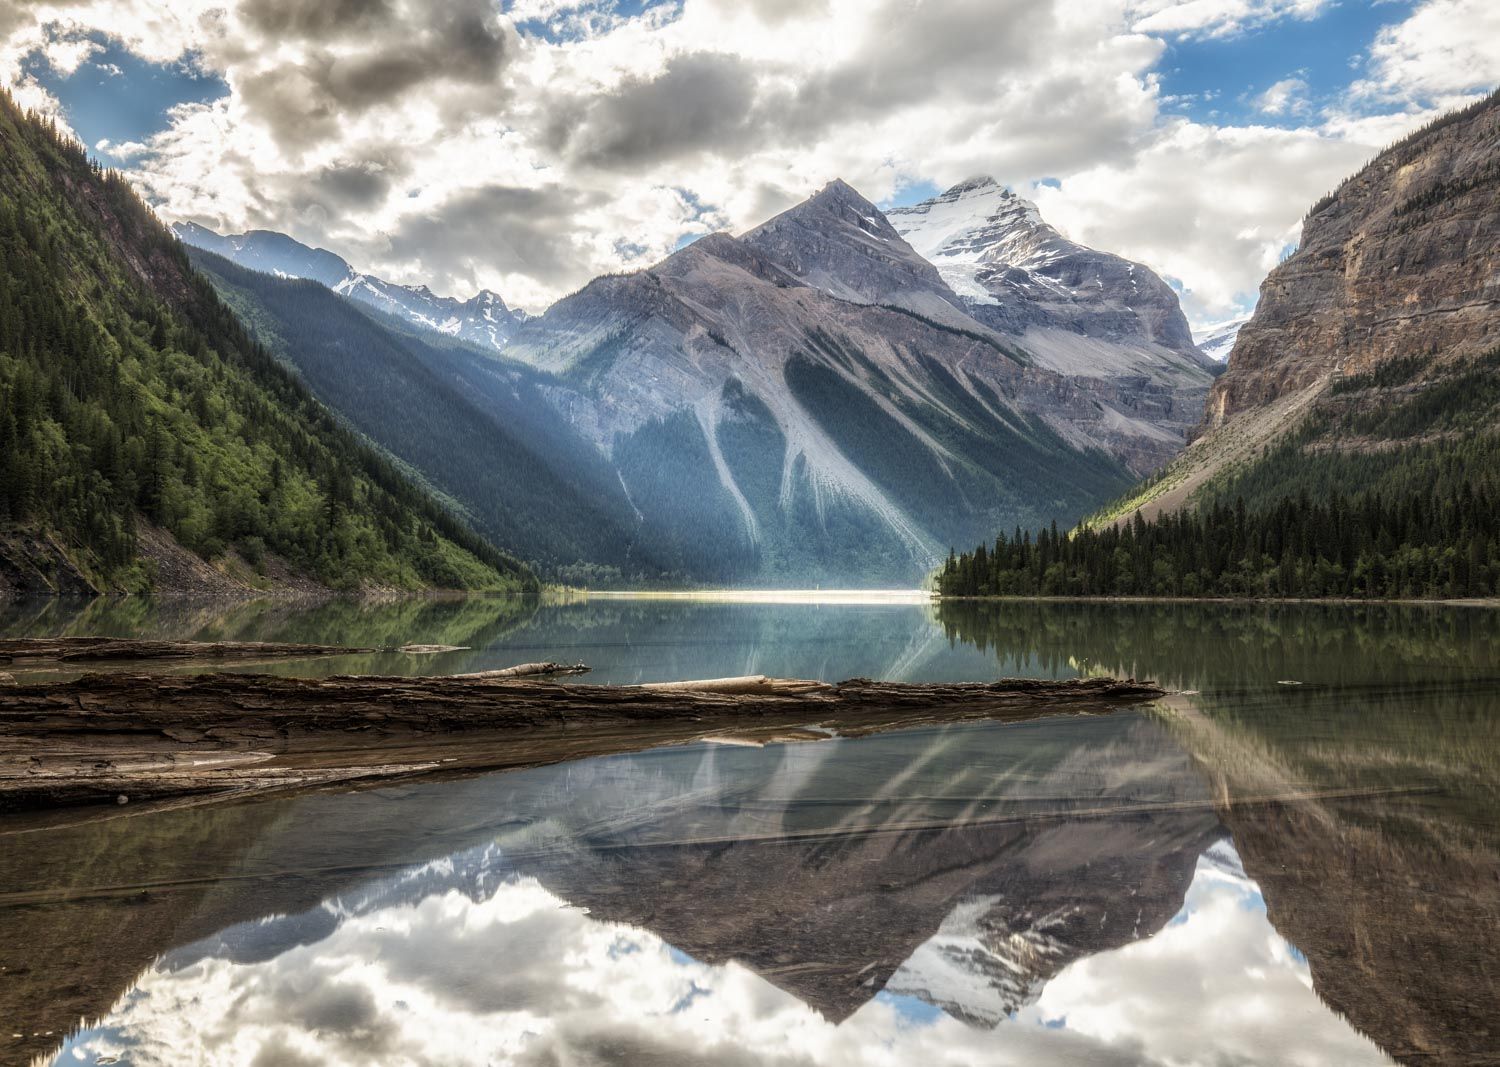 Kinney Lake - Mount Robson National Park, Canada - Landscape Photographer